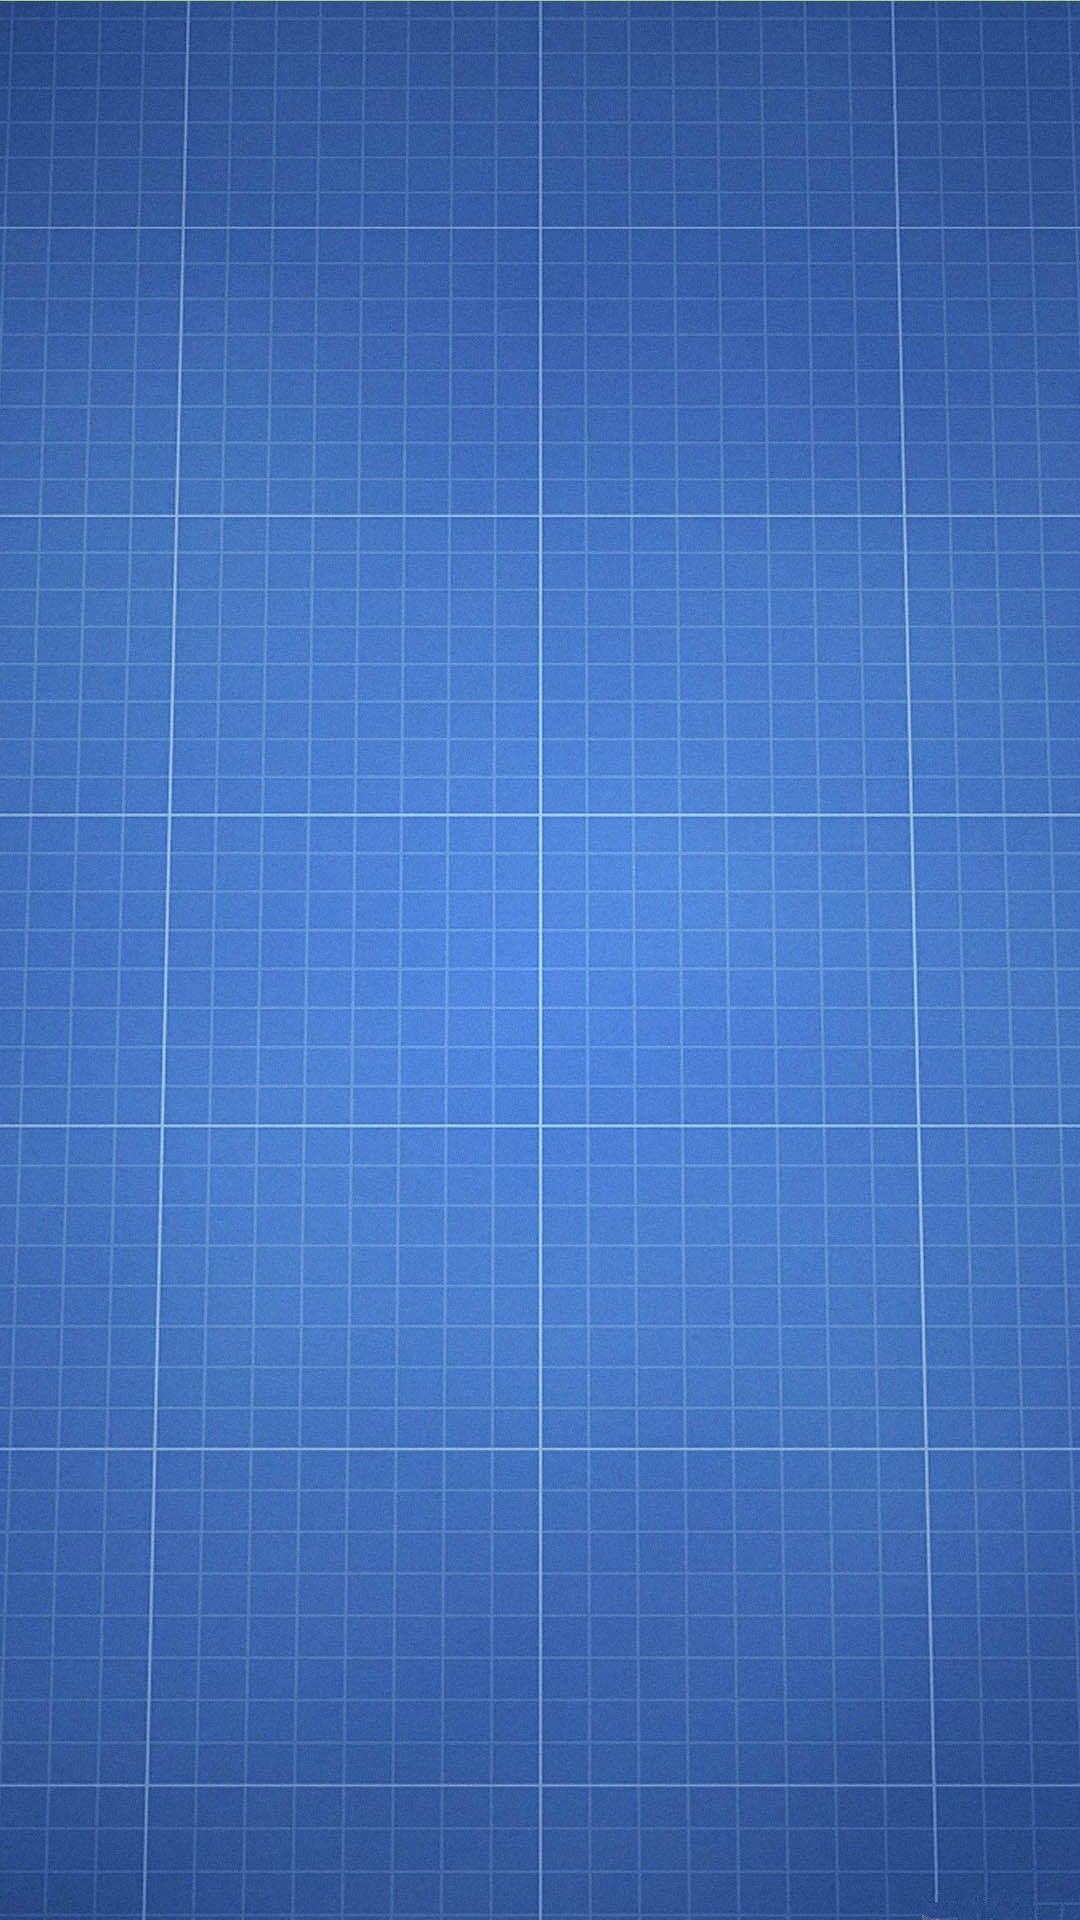 Blueprint Grid Android And Iphone Wallpaper Background And Lockscreen